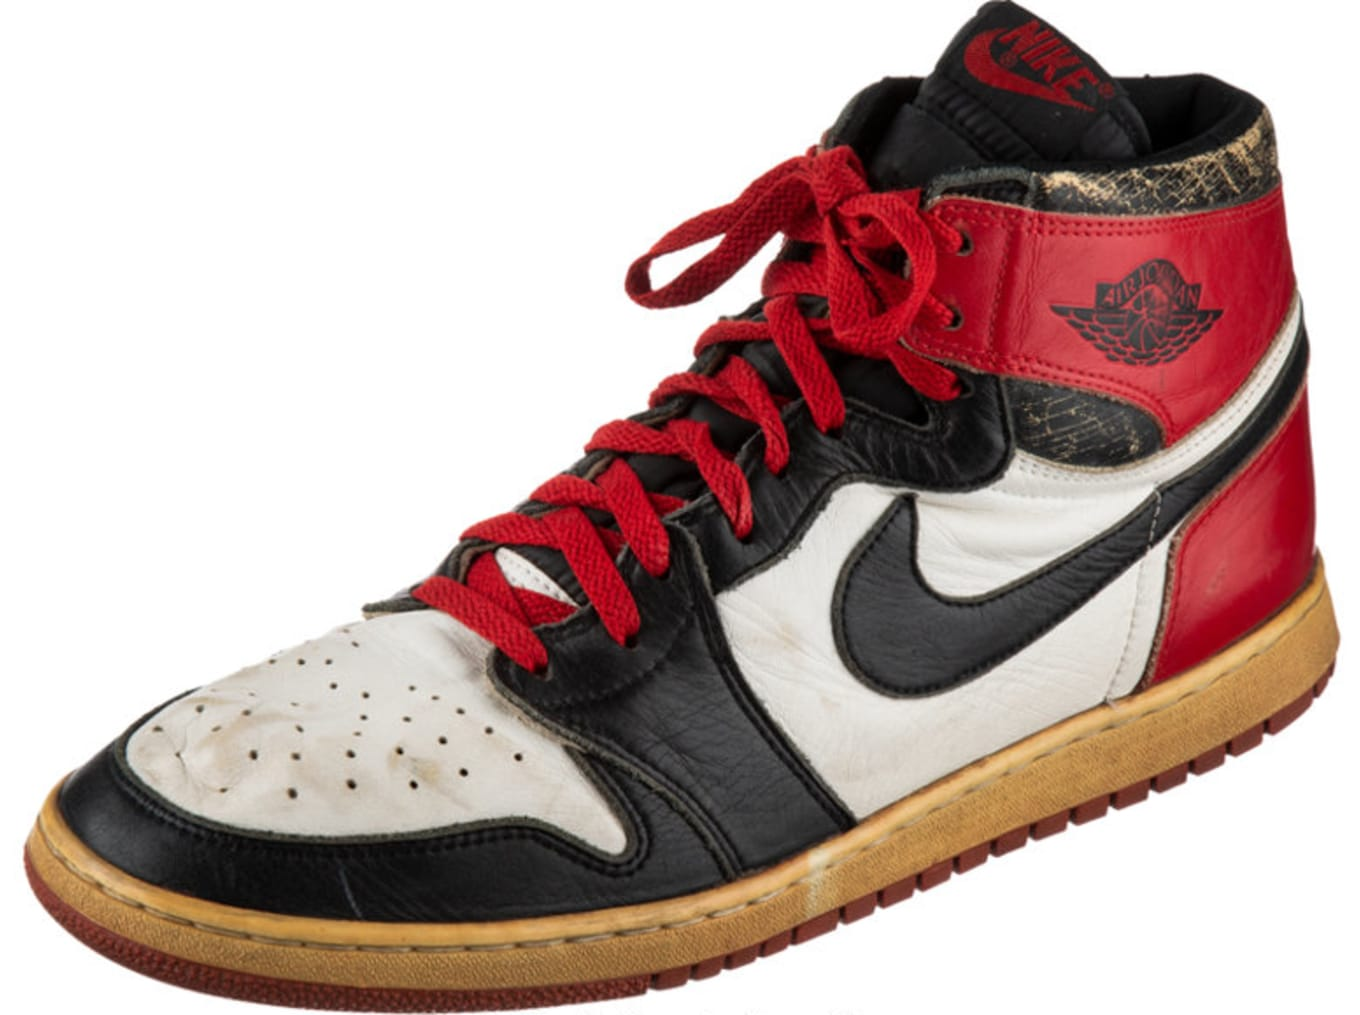 d93ee0010aa43e Your Chance to Own One of Michael Jordan s Game-Worn Air Jordan 1s.